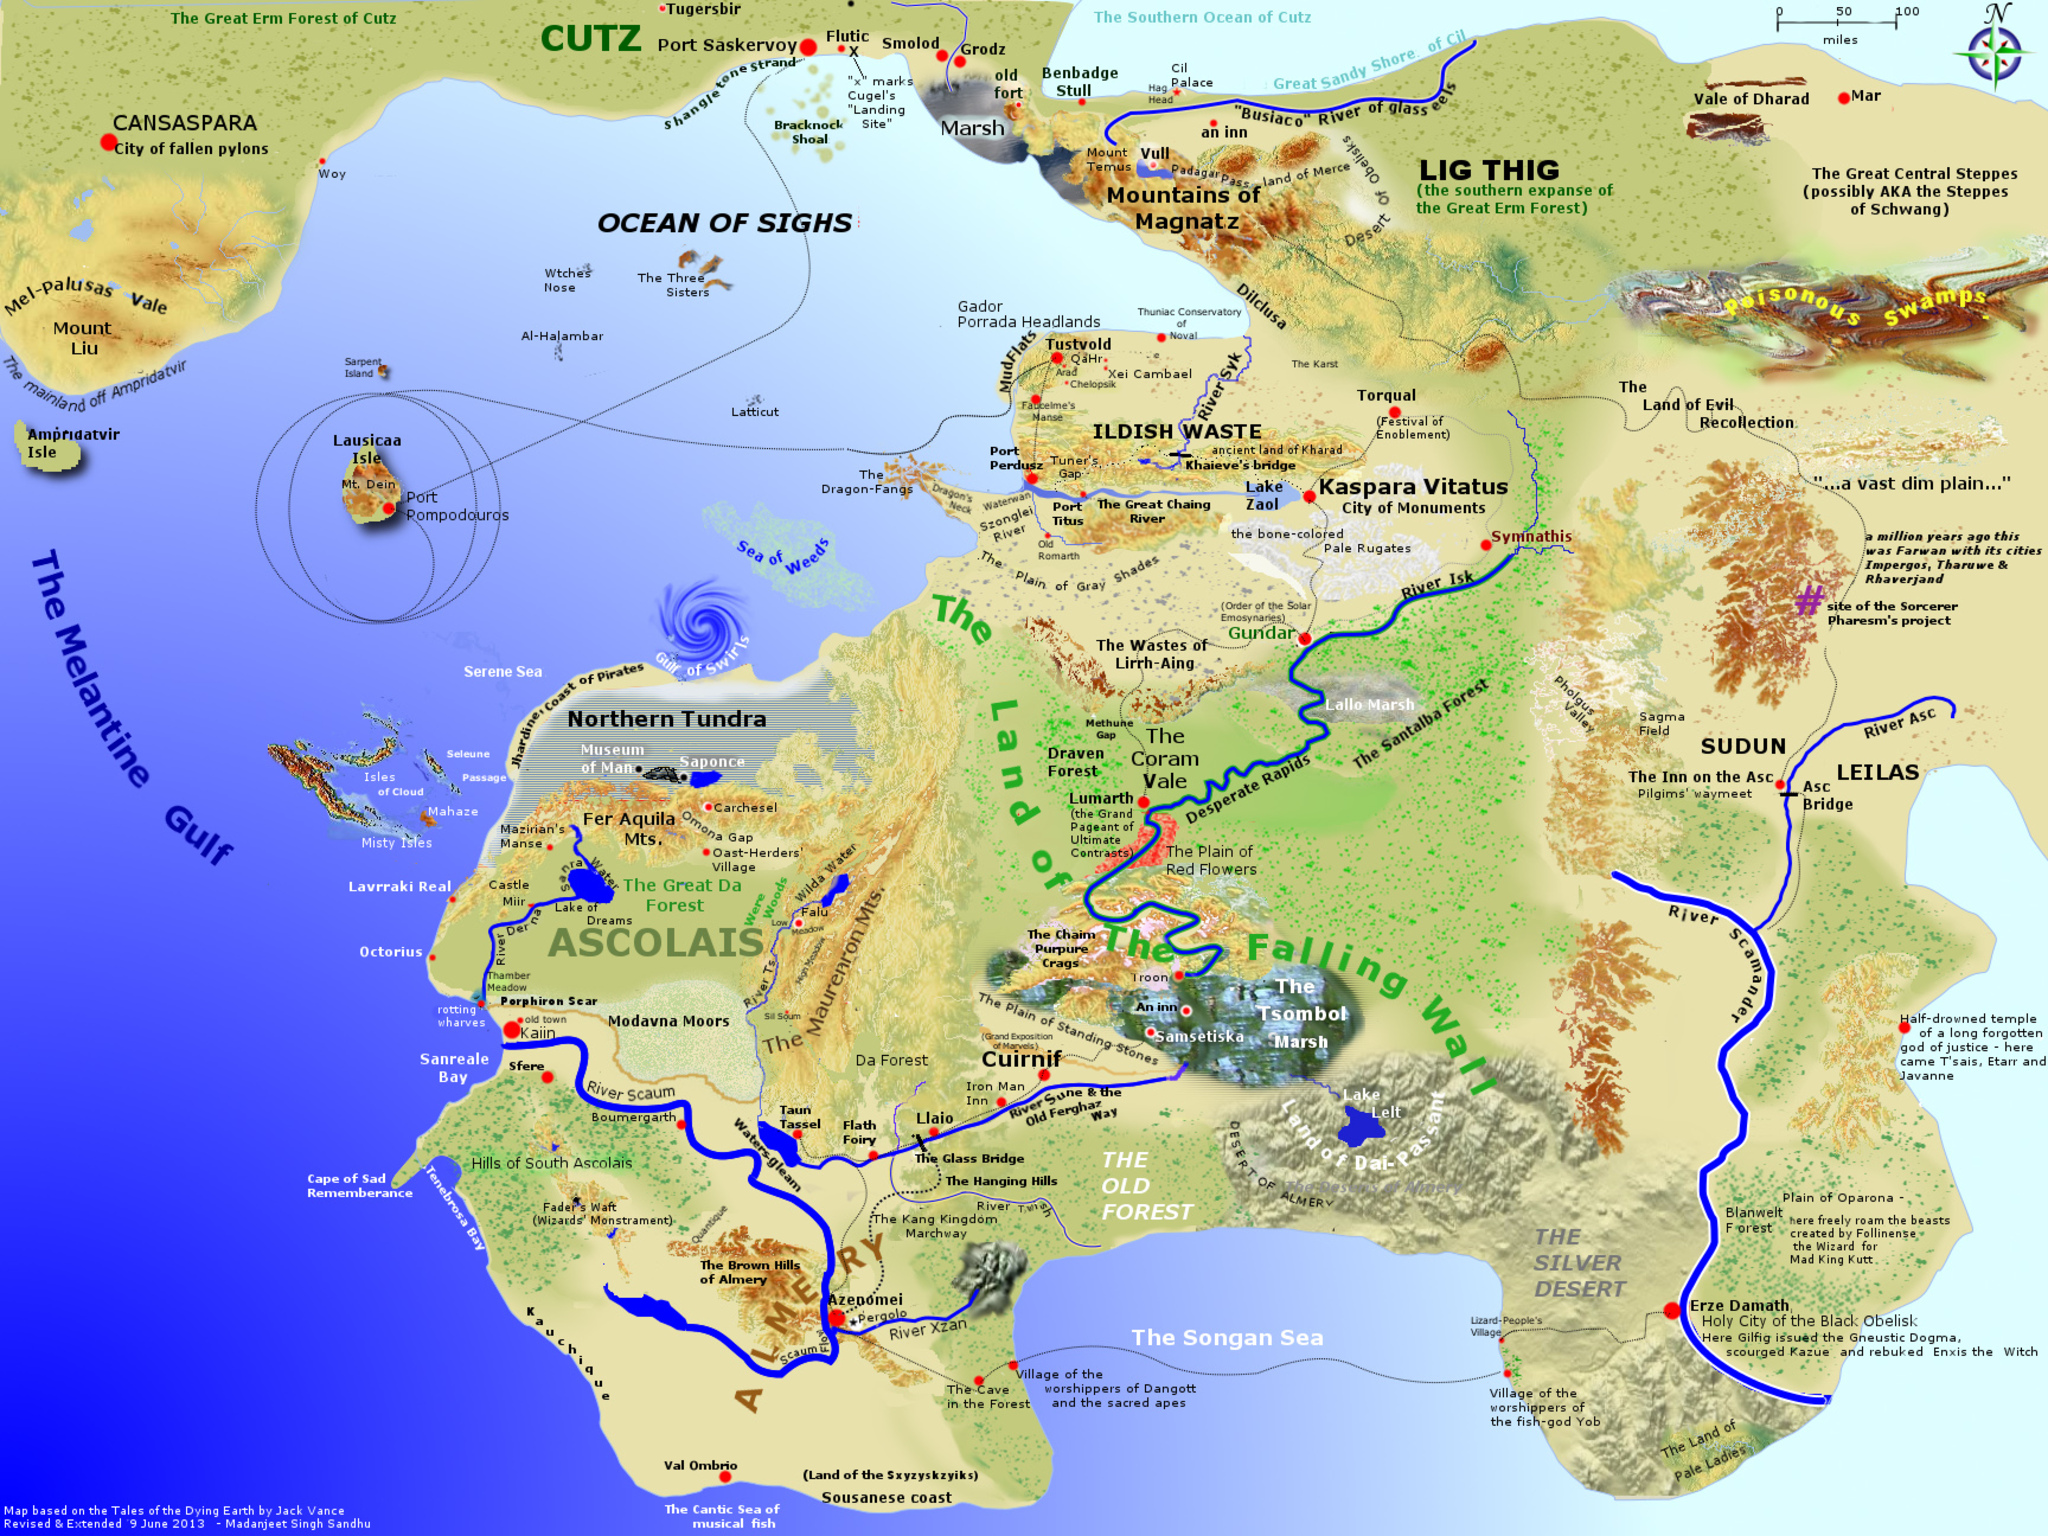 Jack Vance Website Fan Contributions - The map of earth